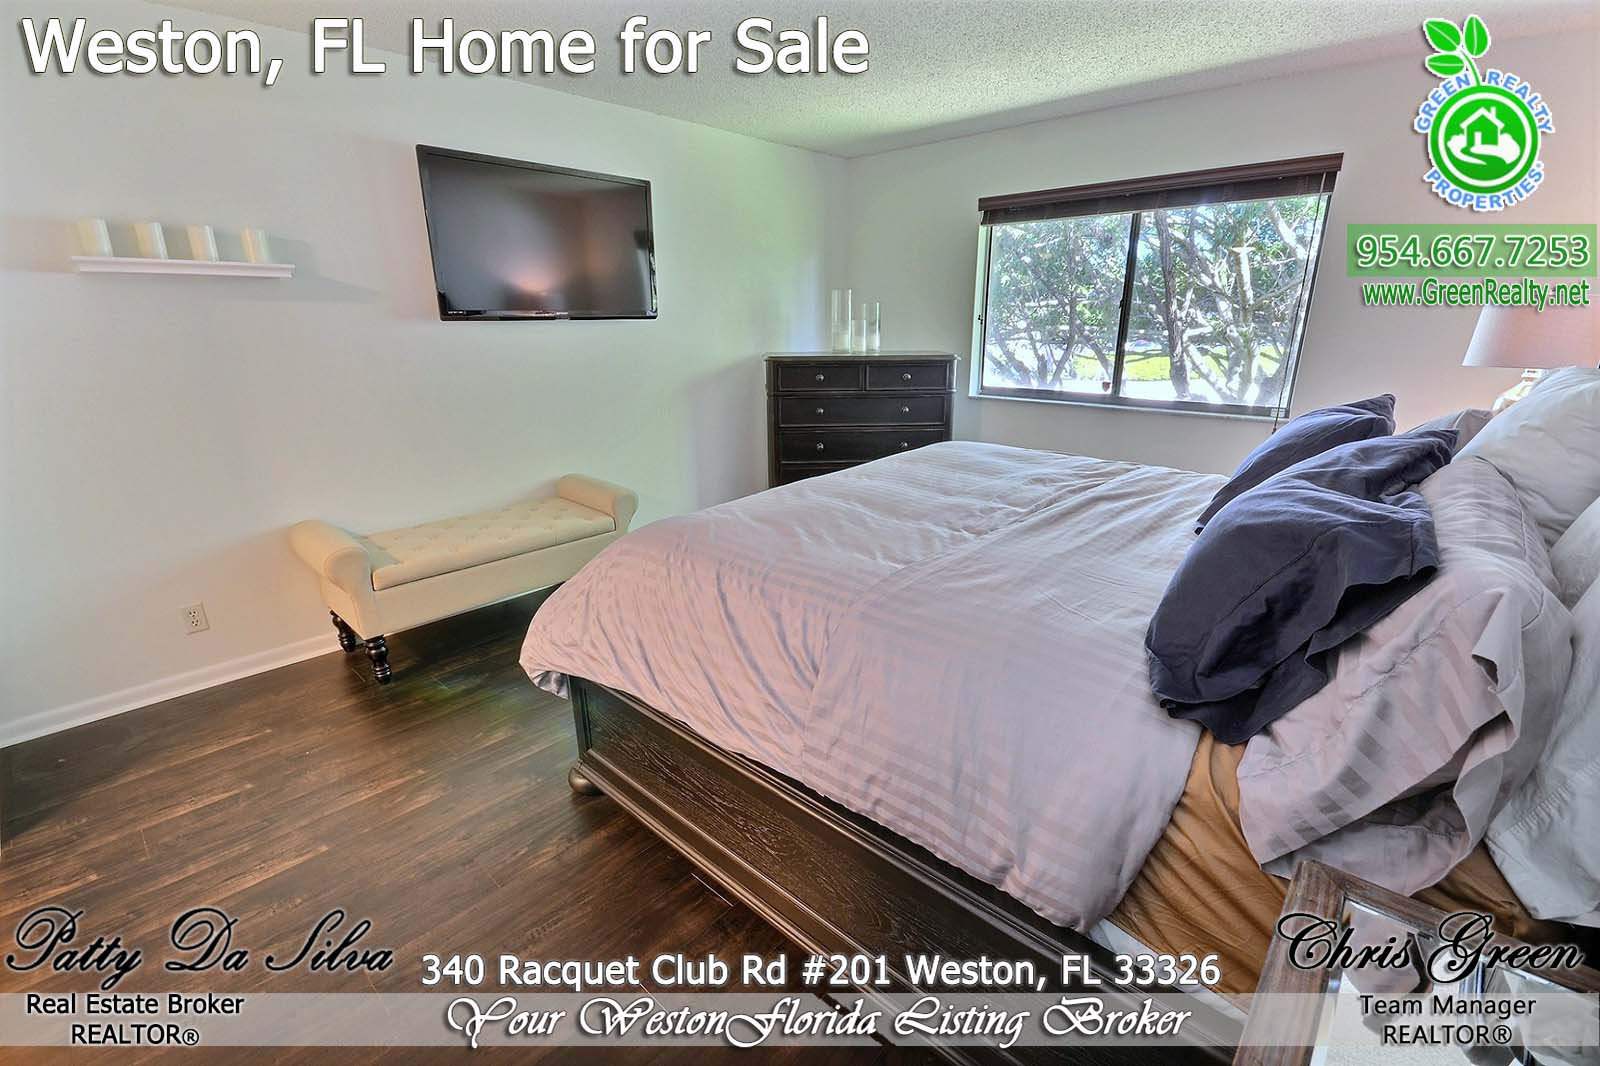 16 Condos For Sale in Weston Florida